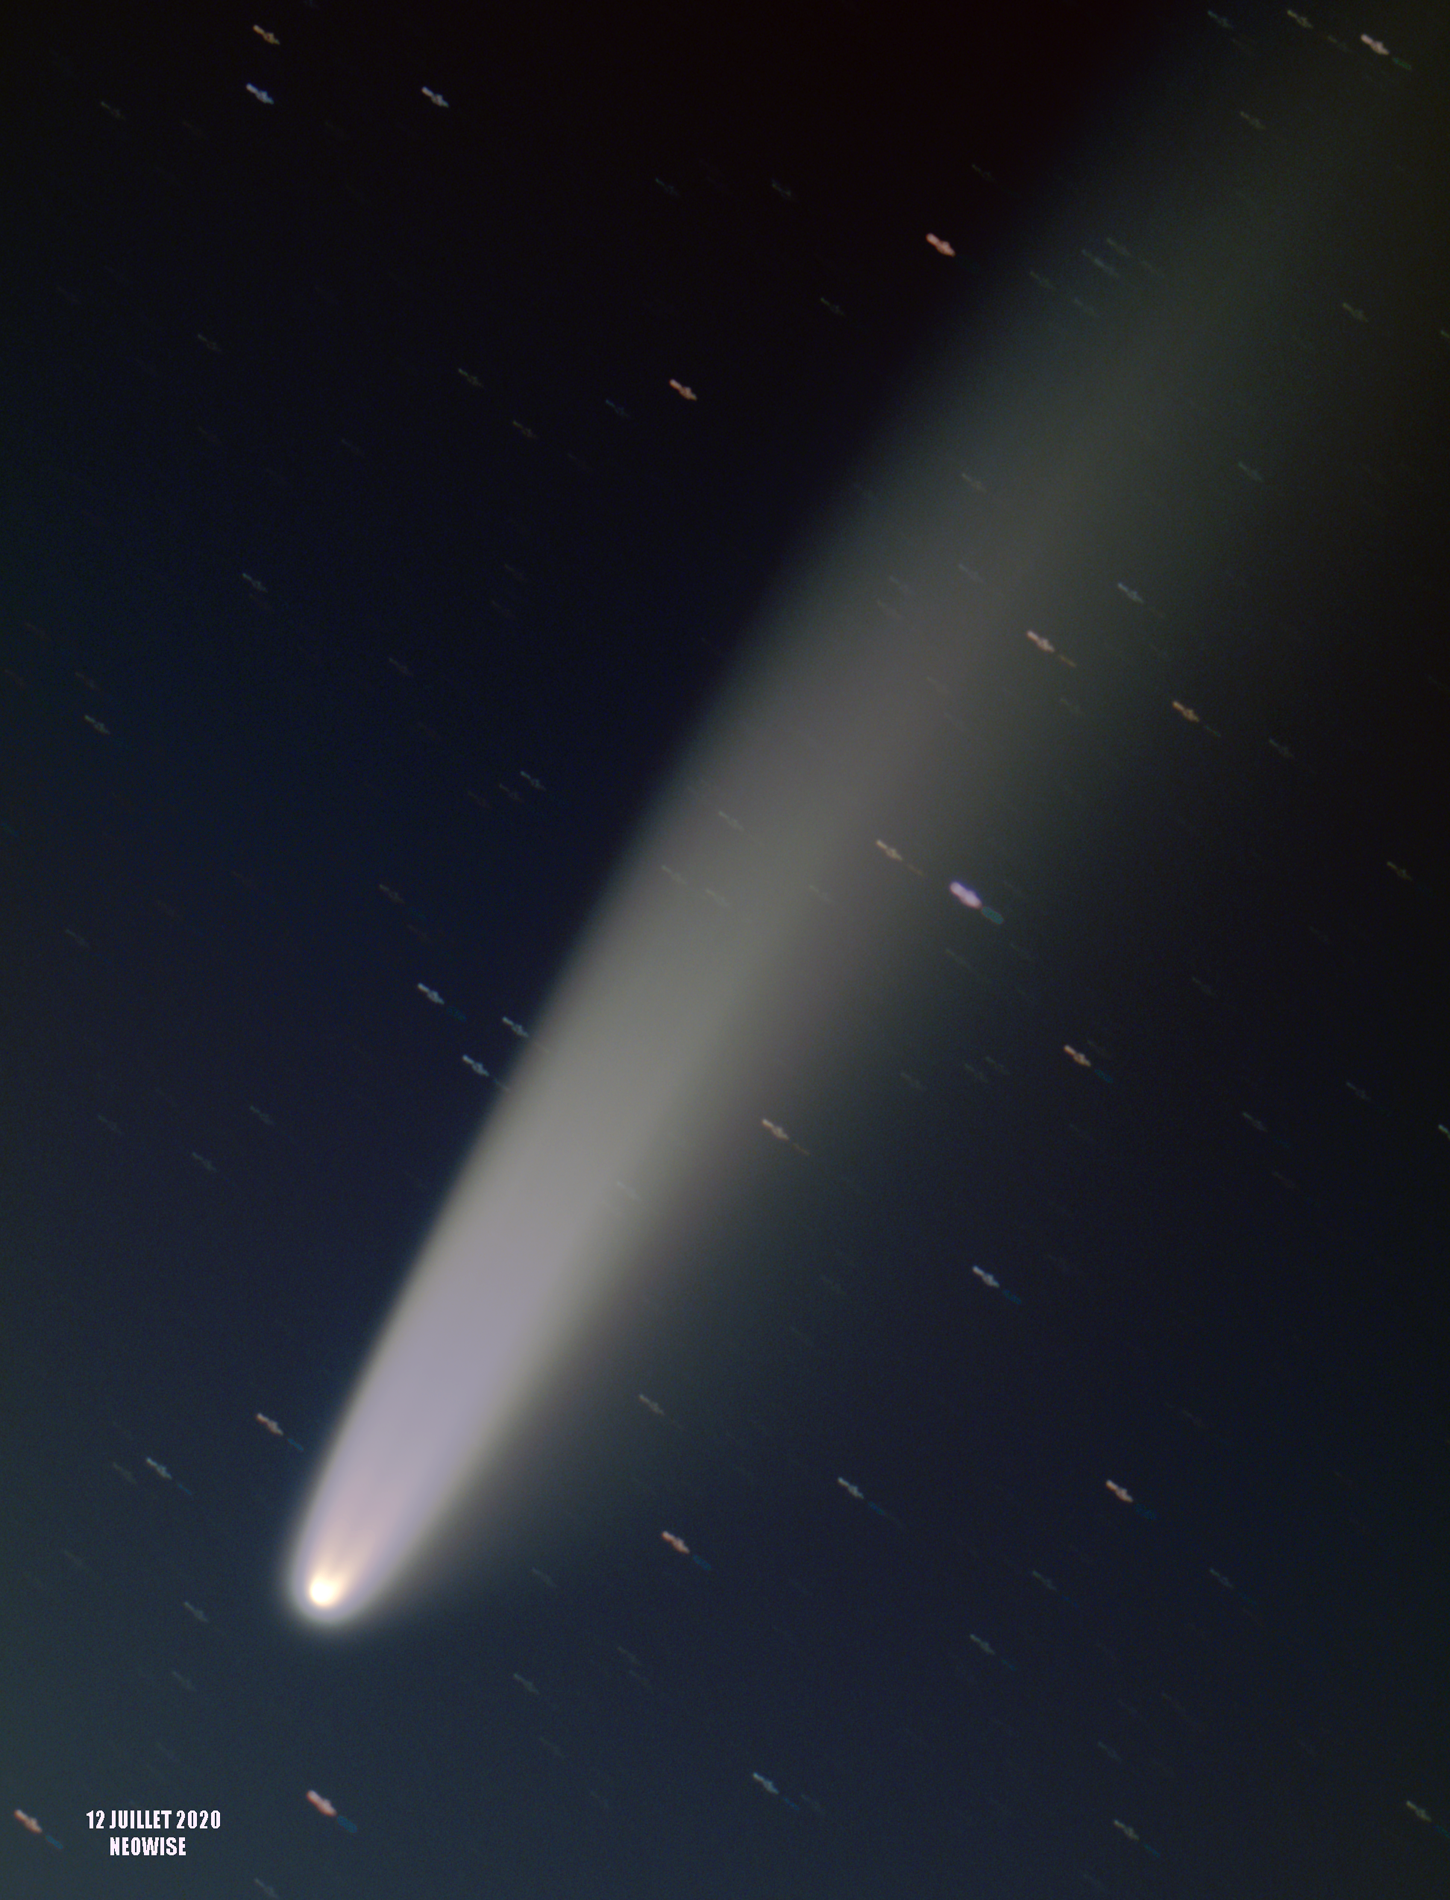 12juillet2020 NEOWISE  FS60.png